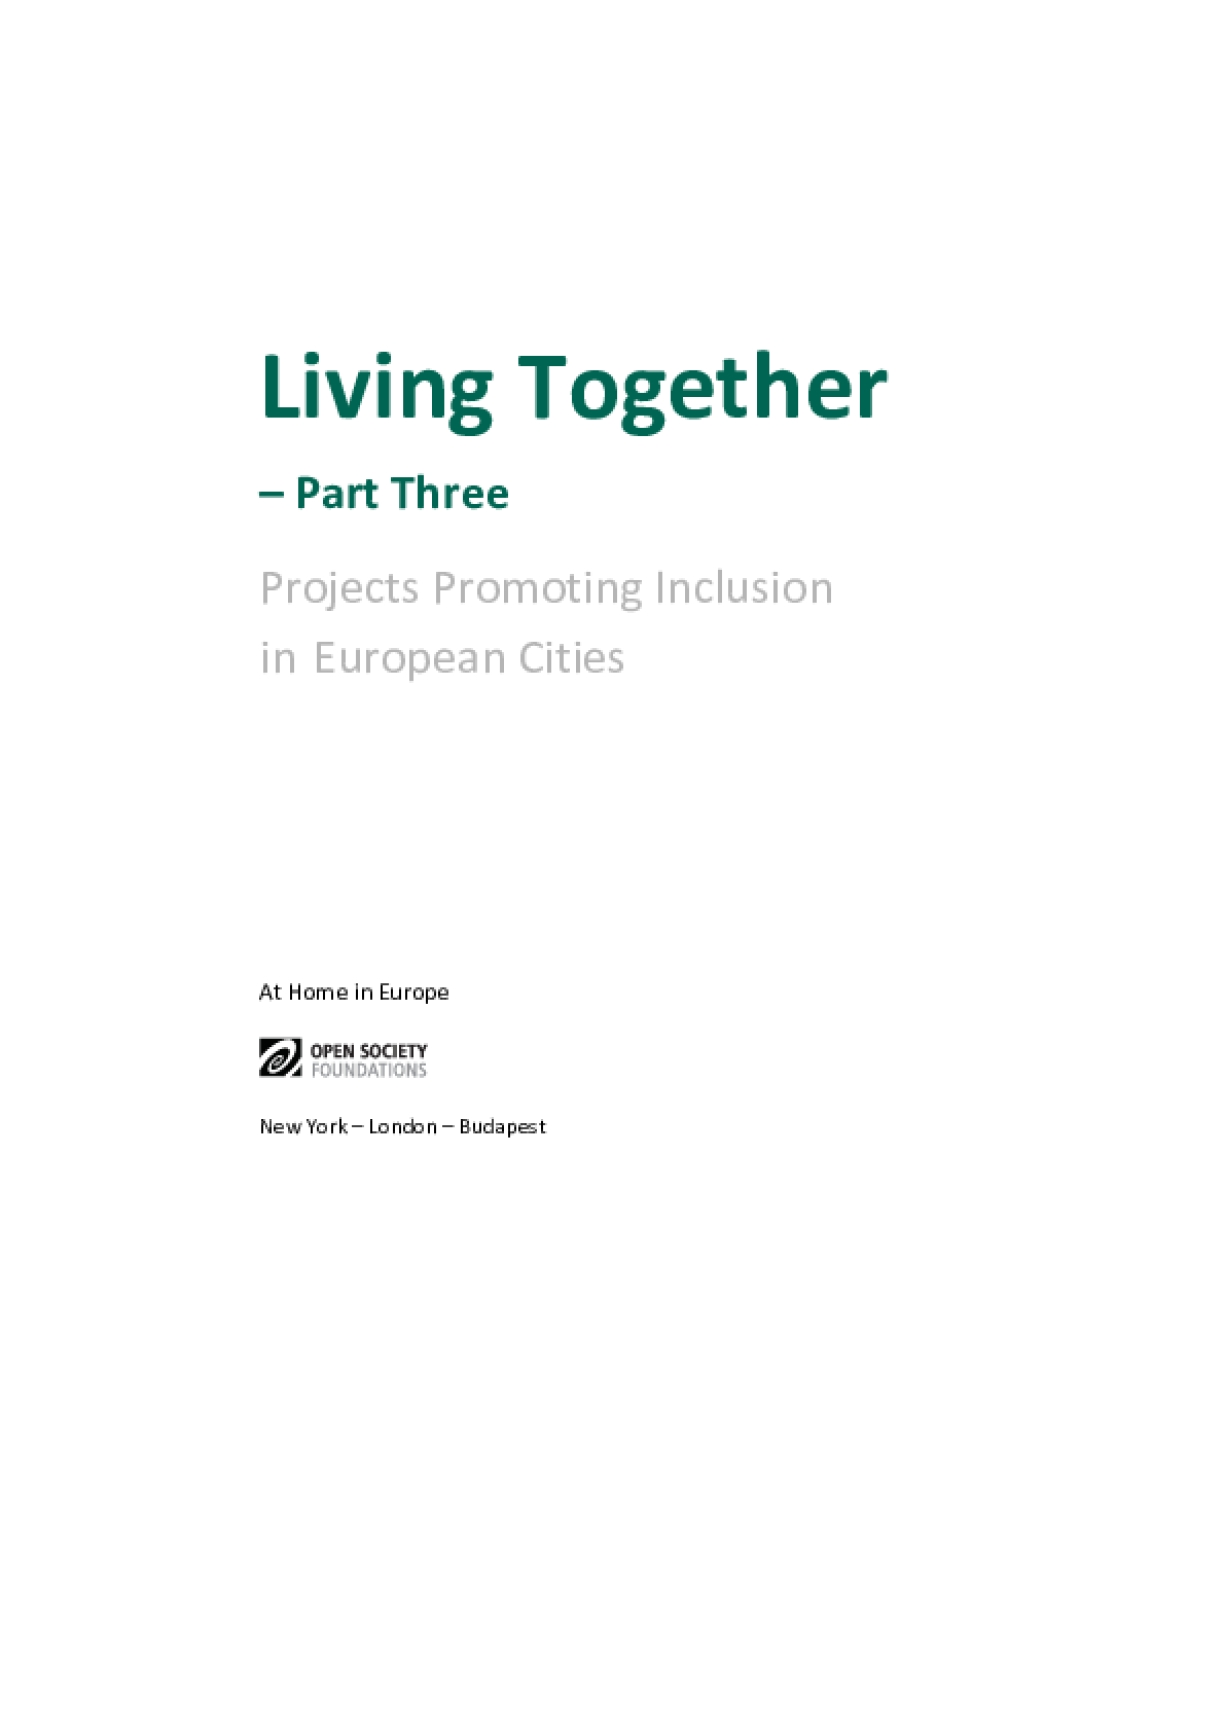 Living Together, Part Three: Projects Promoting Inclusion in European Cities